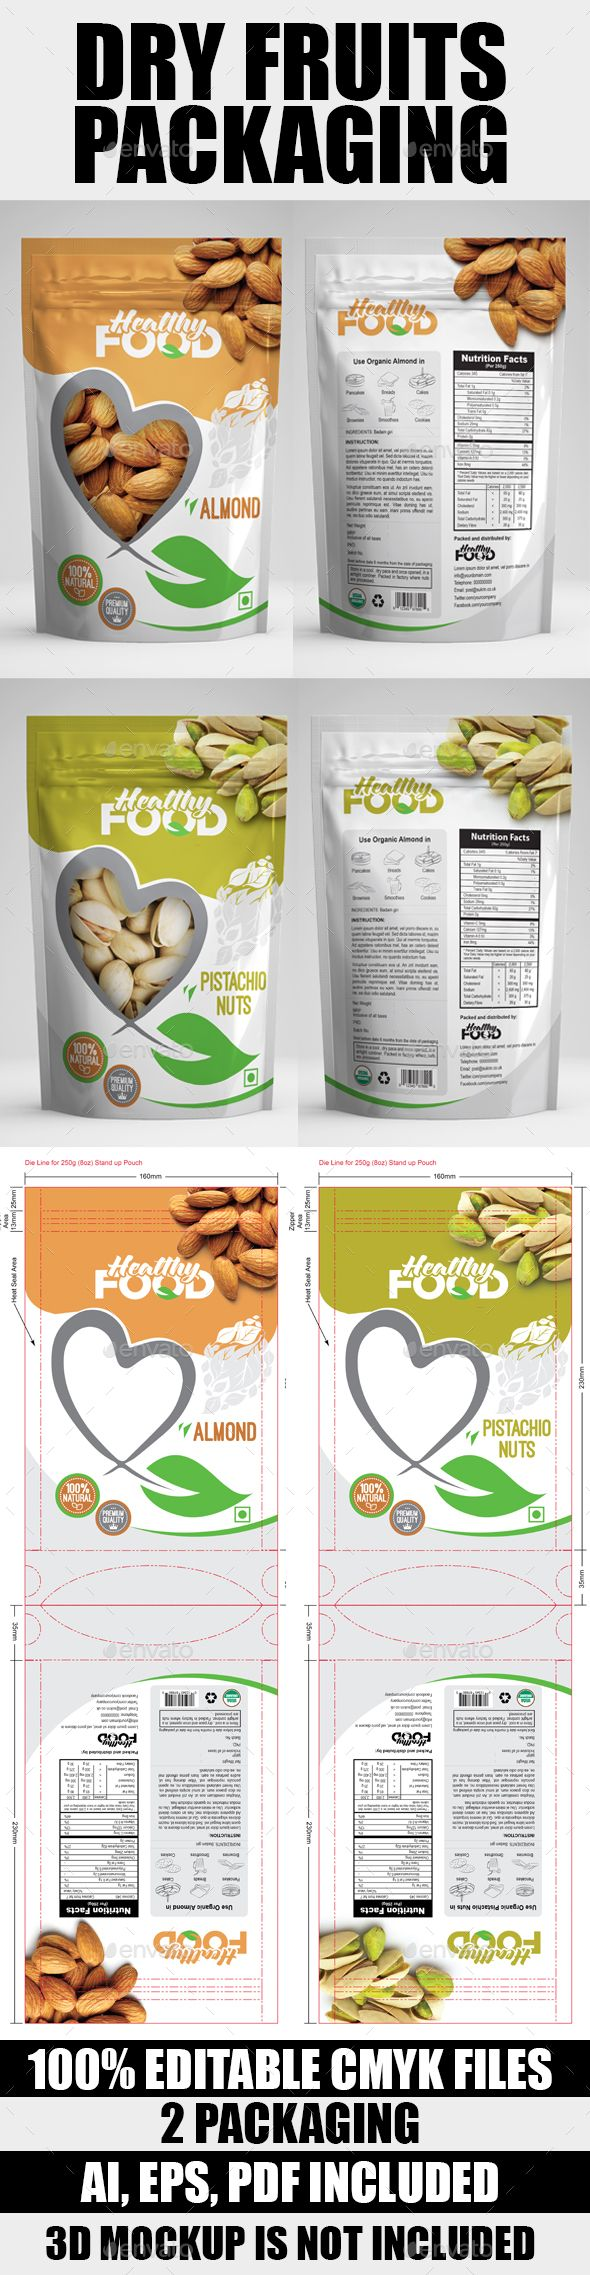 adobe illustrator packaging templates - 25 best ideas about bag packaging on pinterest box